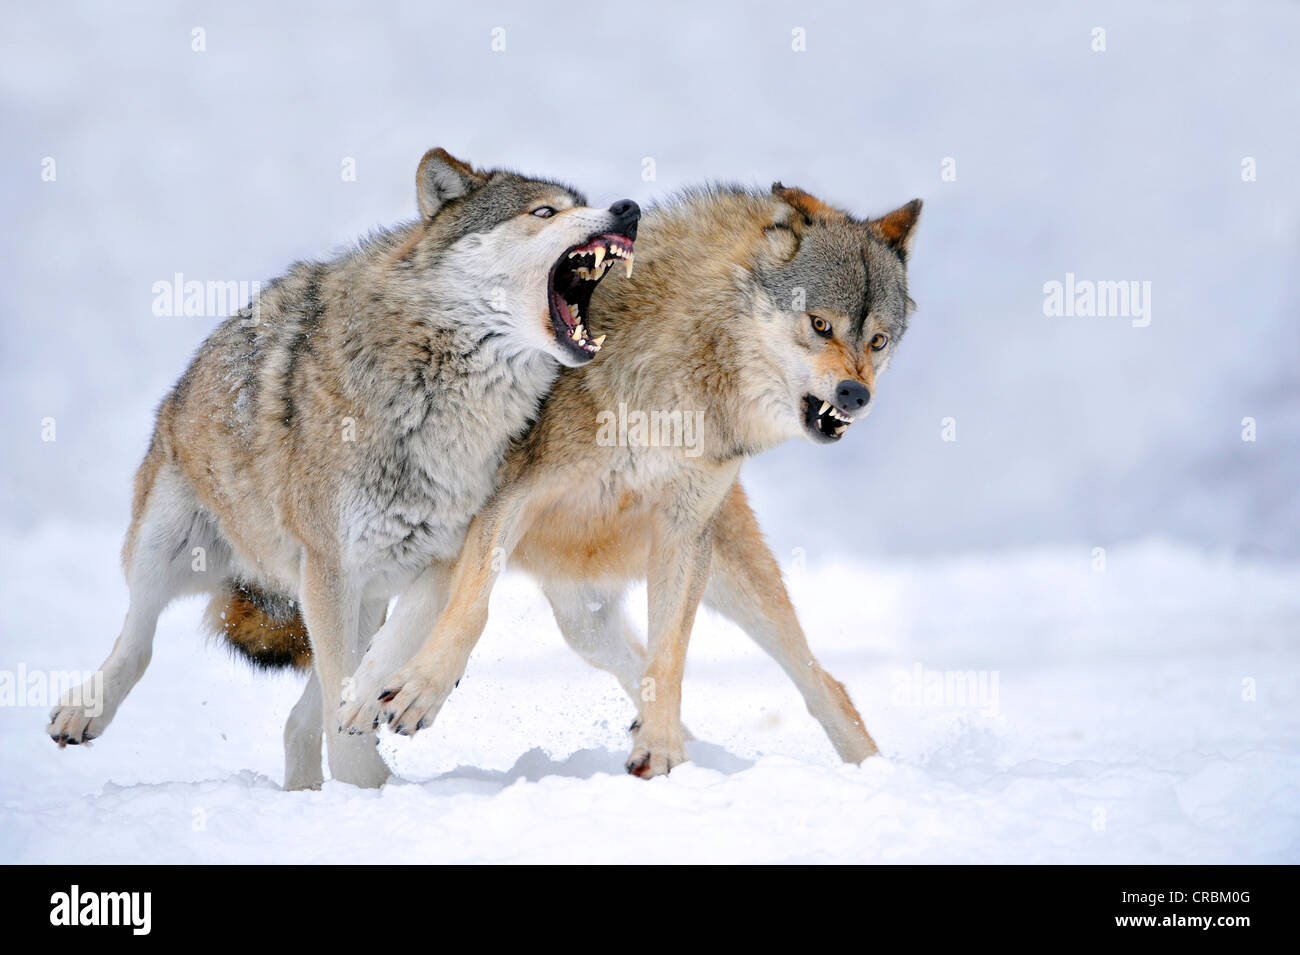 Mackenzie-Wolves, Eastern wolf, Canadian wolf (Canis lupus occidentalis) in snow, fight for social ranking Stock Photo